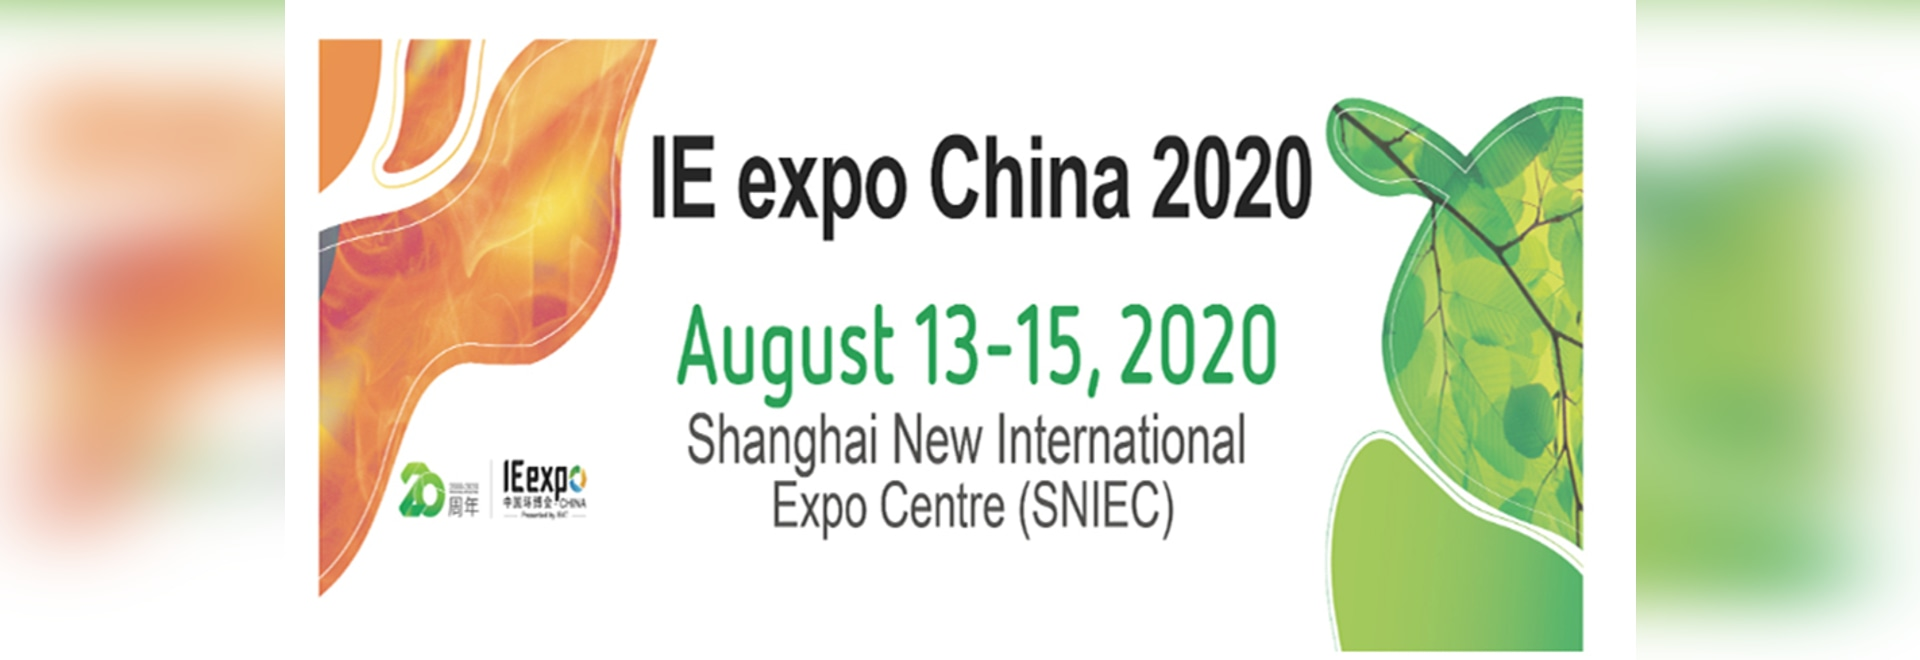 See you at the IE expo China 2020 Exhibition